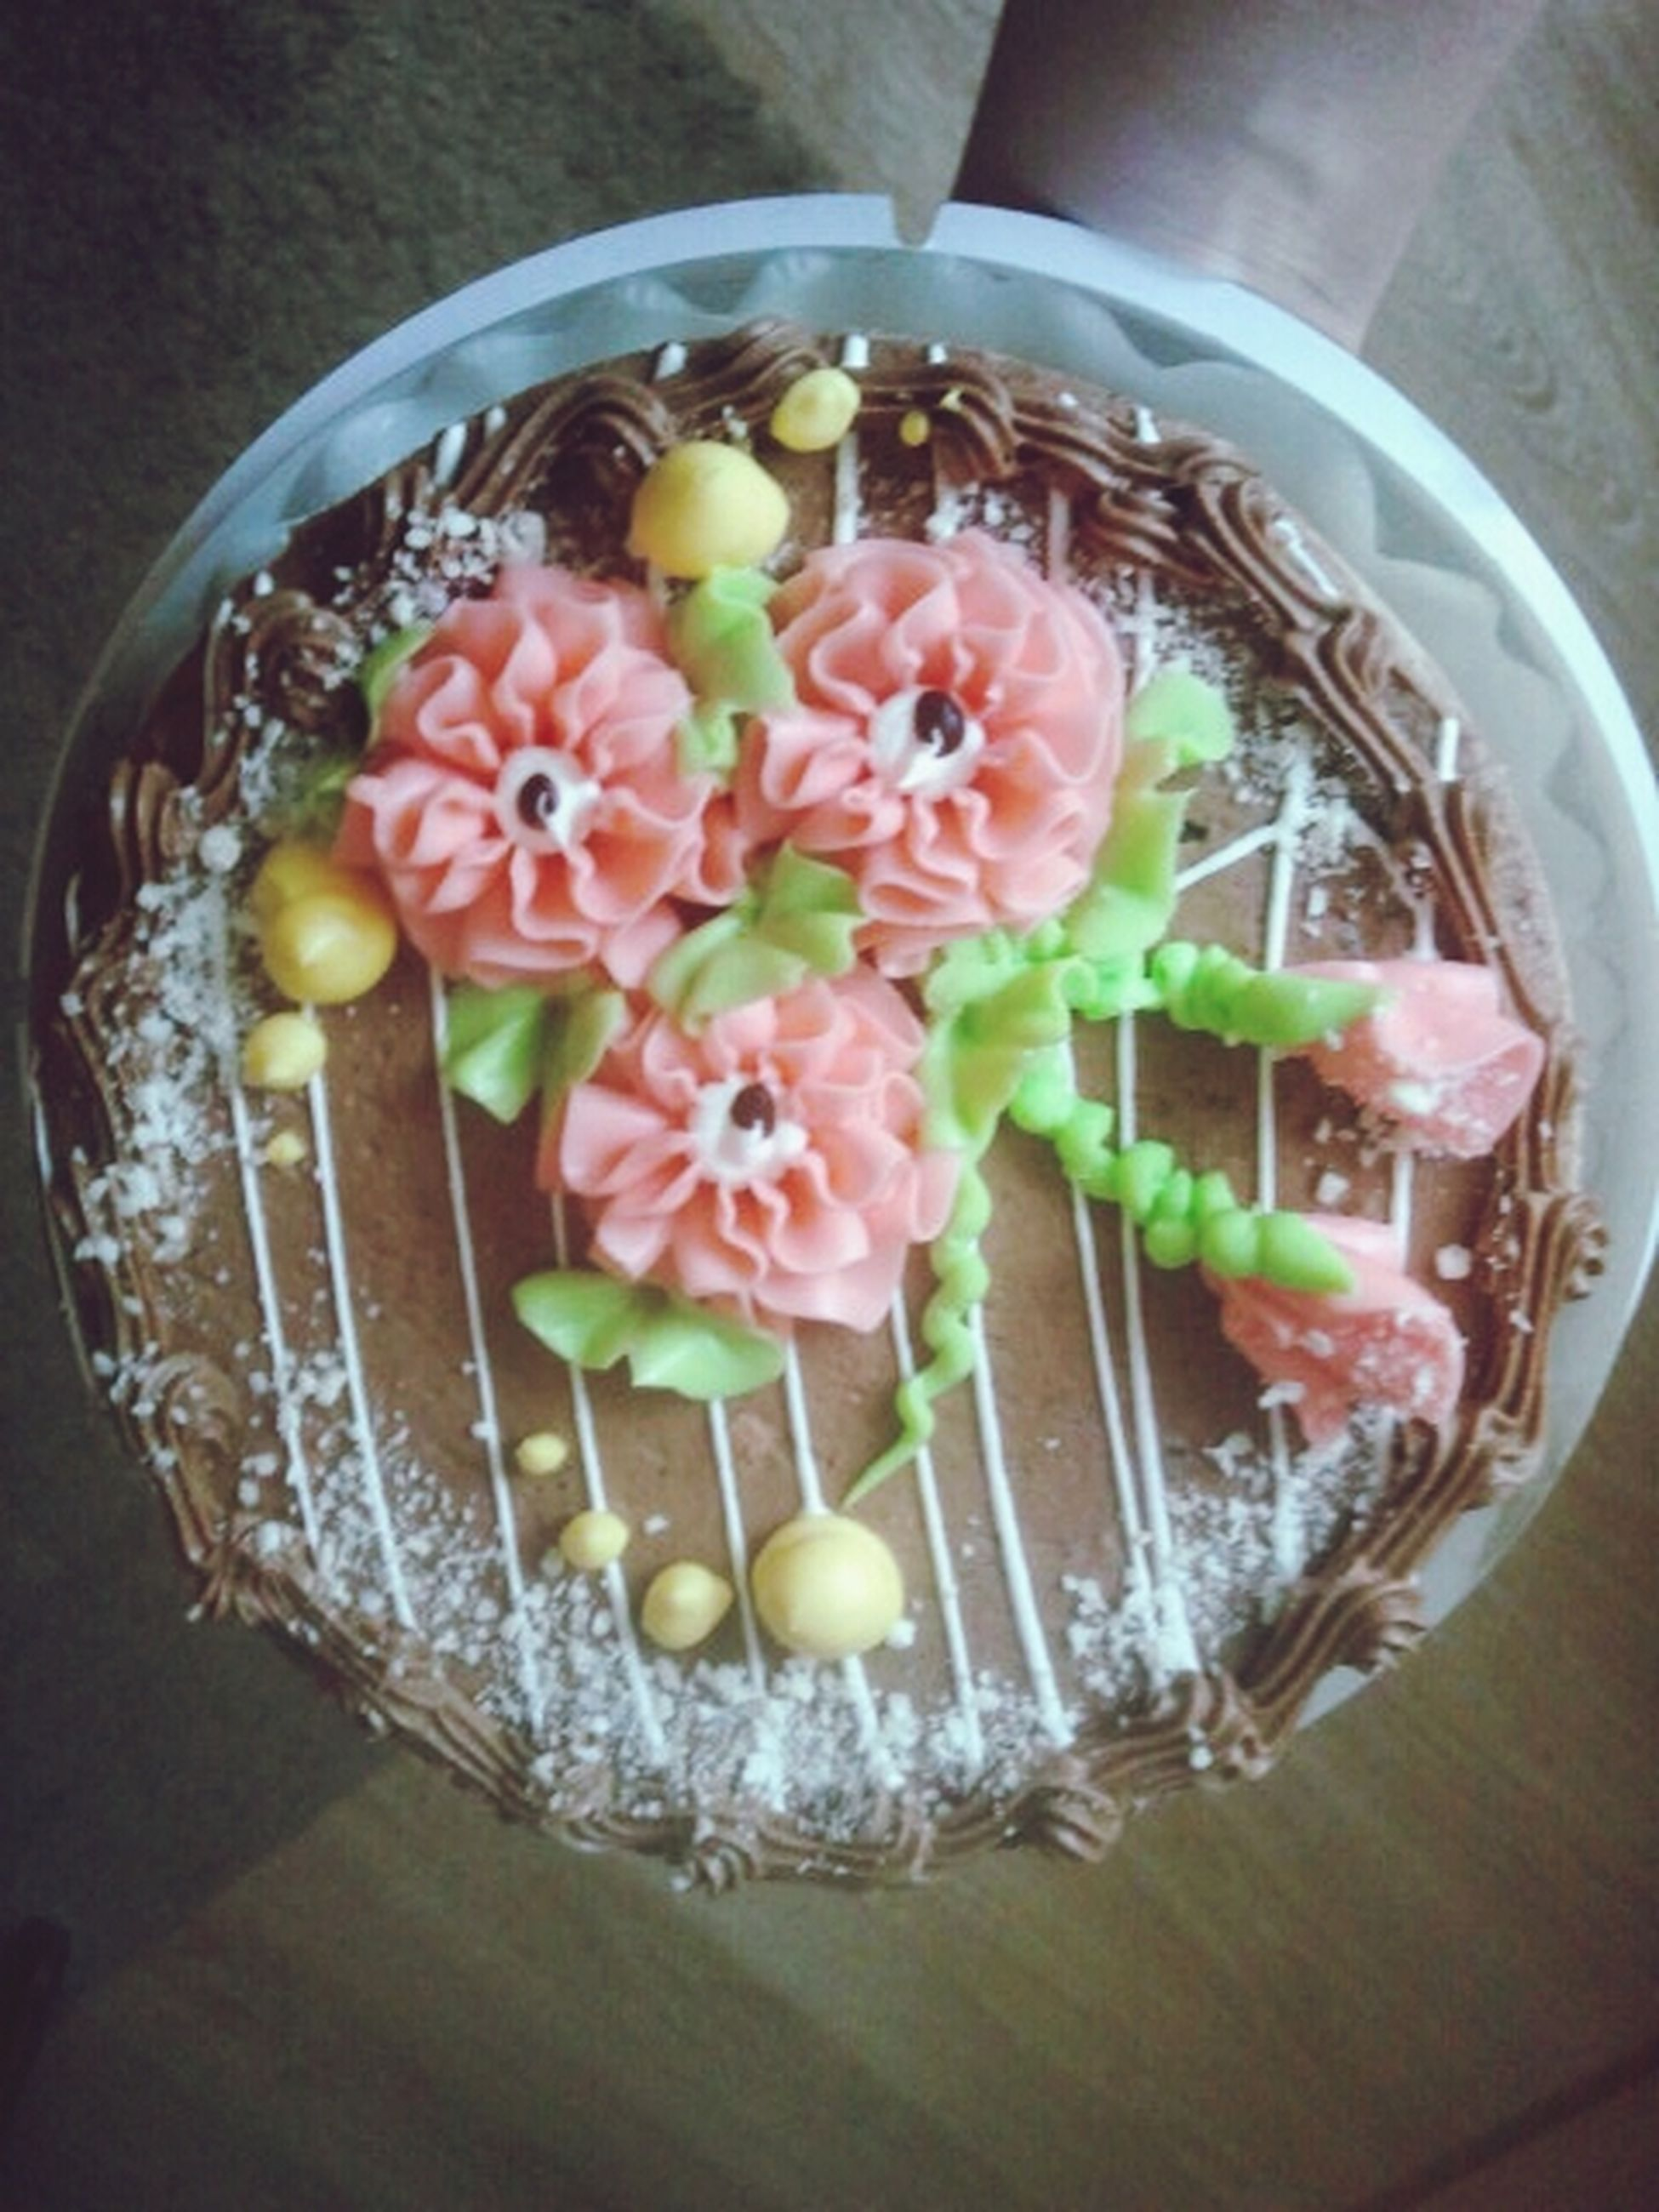 indoors, food and drink, food, freshness, table, sweet food, still life, plate, ready-to-eat, dessert, indulgence, high angle view, decoration, temptation, bowl, unhealthy eating, cake, fruit, close-up, serving size